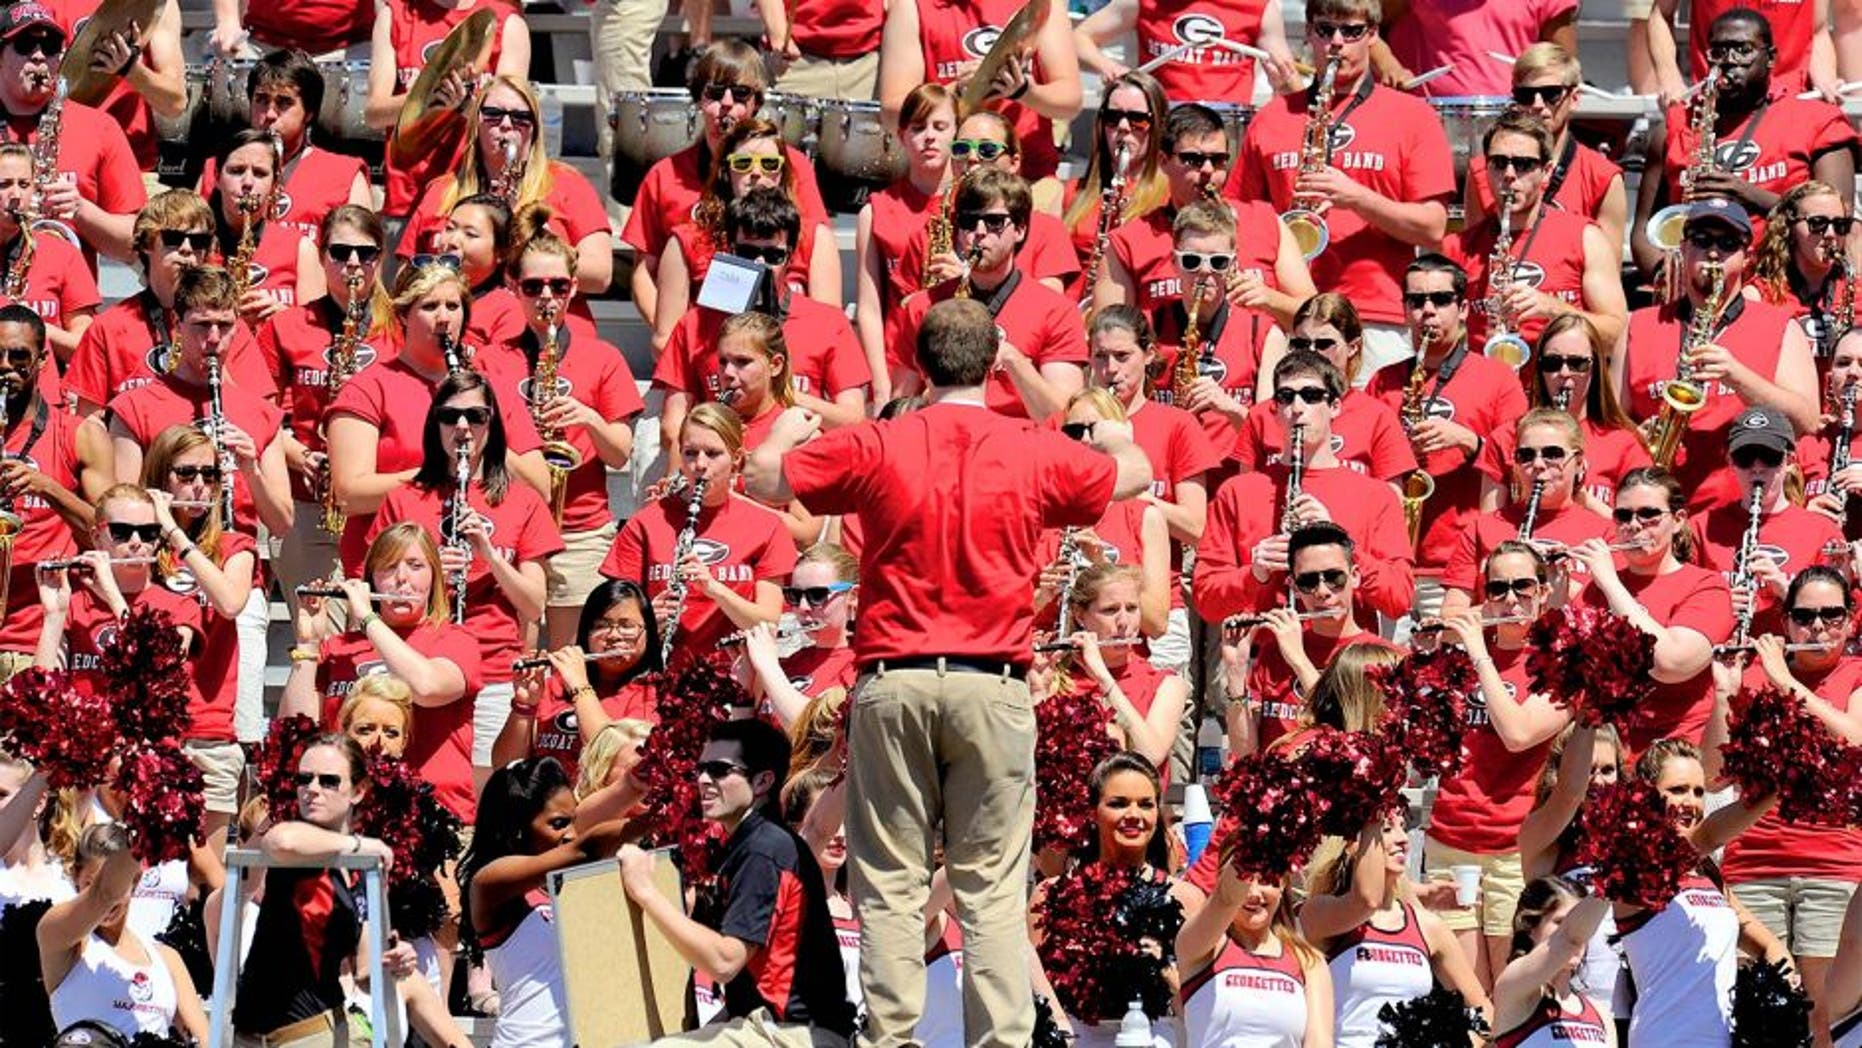 Apr 6, 2013; Athens, GA, USA; The Georgia Bulldogs band shown during the Georgia Spring Day Game at Sanford Stadium. The black team defeated the red team 23-17. Mandatory Credit: Dale Zanine-USA TODAY Sports